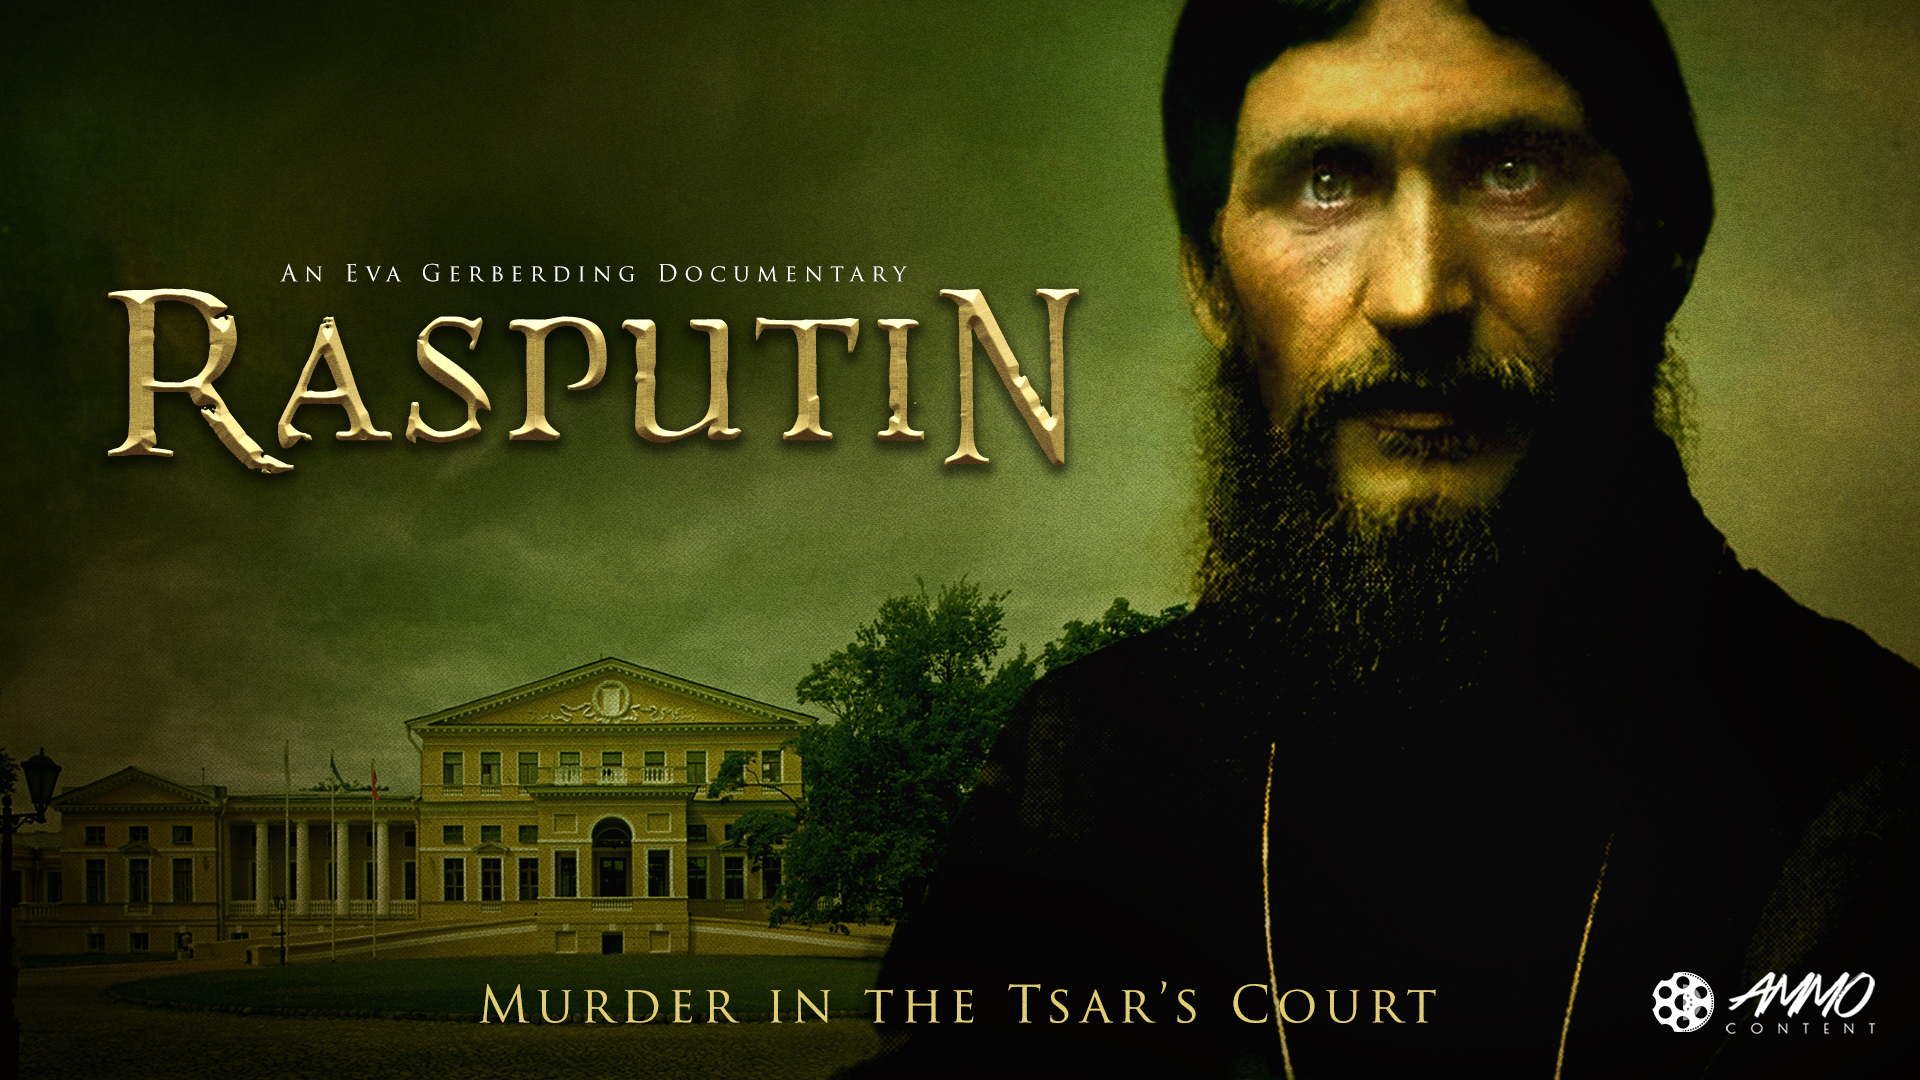 Rasputin: Murder in the Tsar's Court